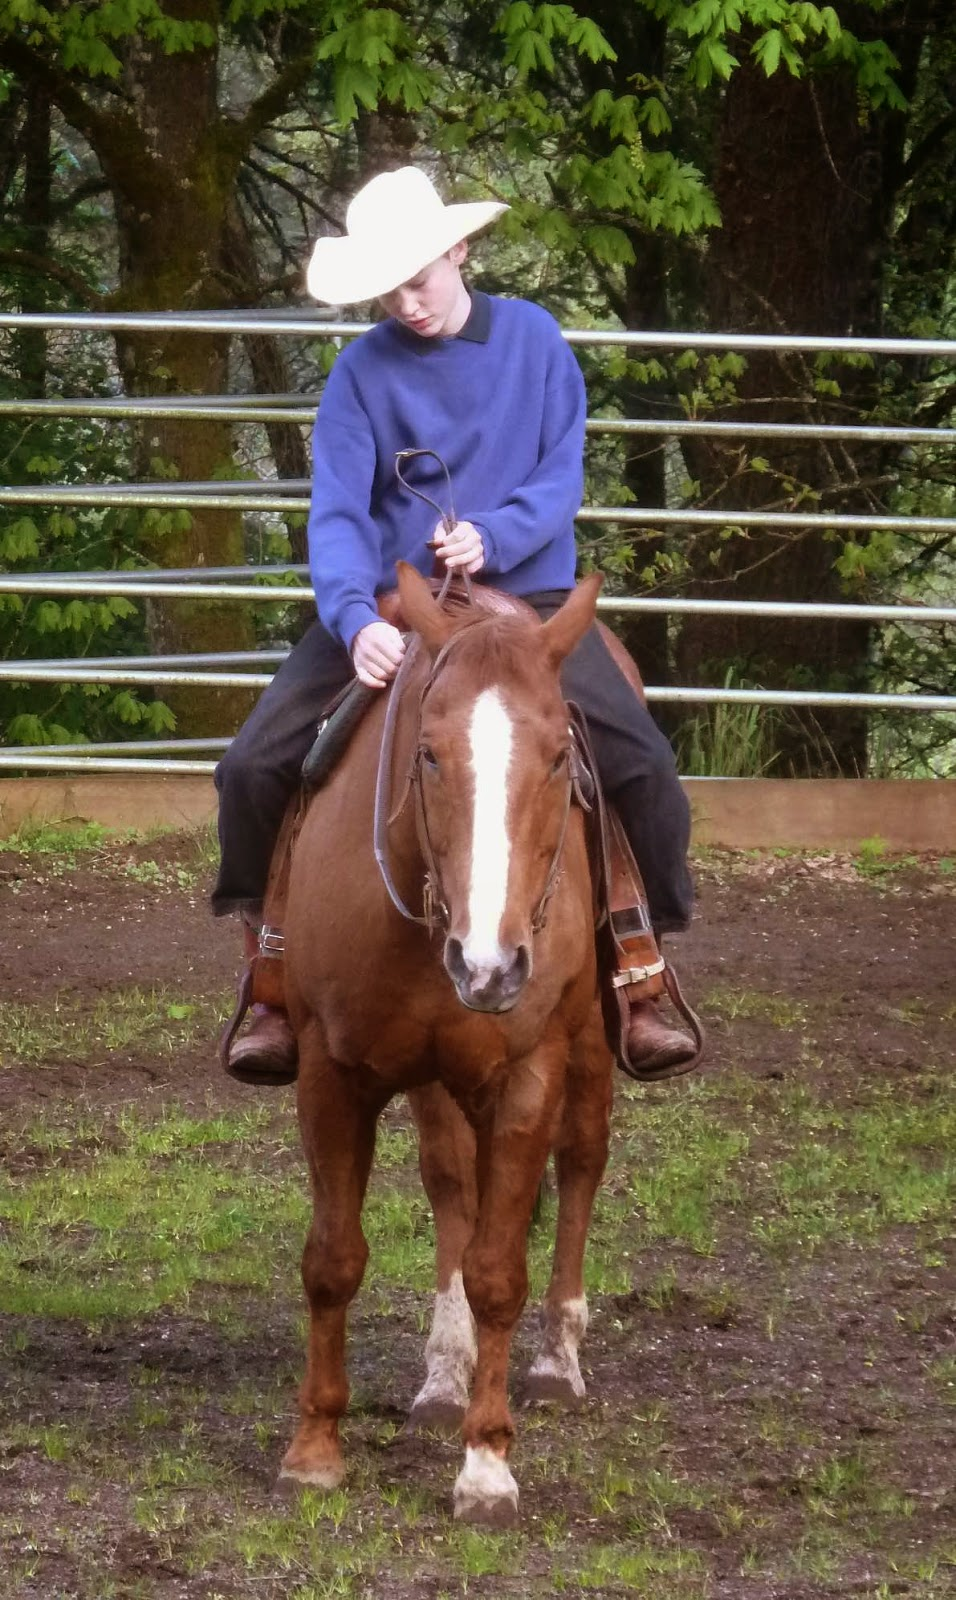 Equestrian Blog Of The Day - Dances With Horses